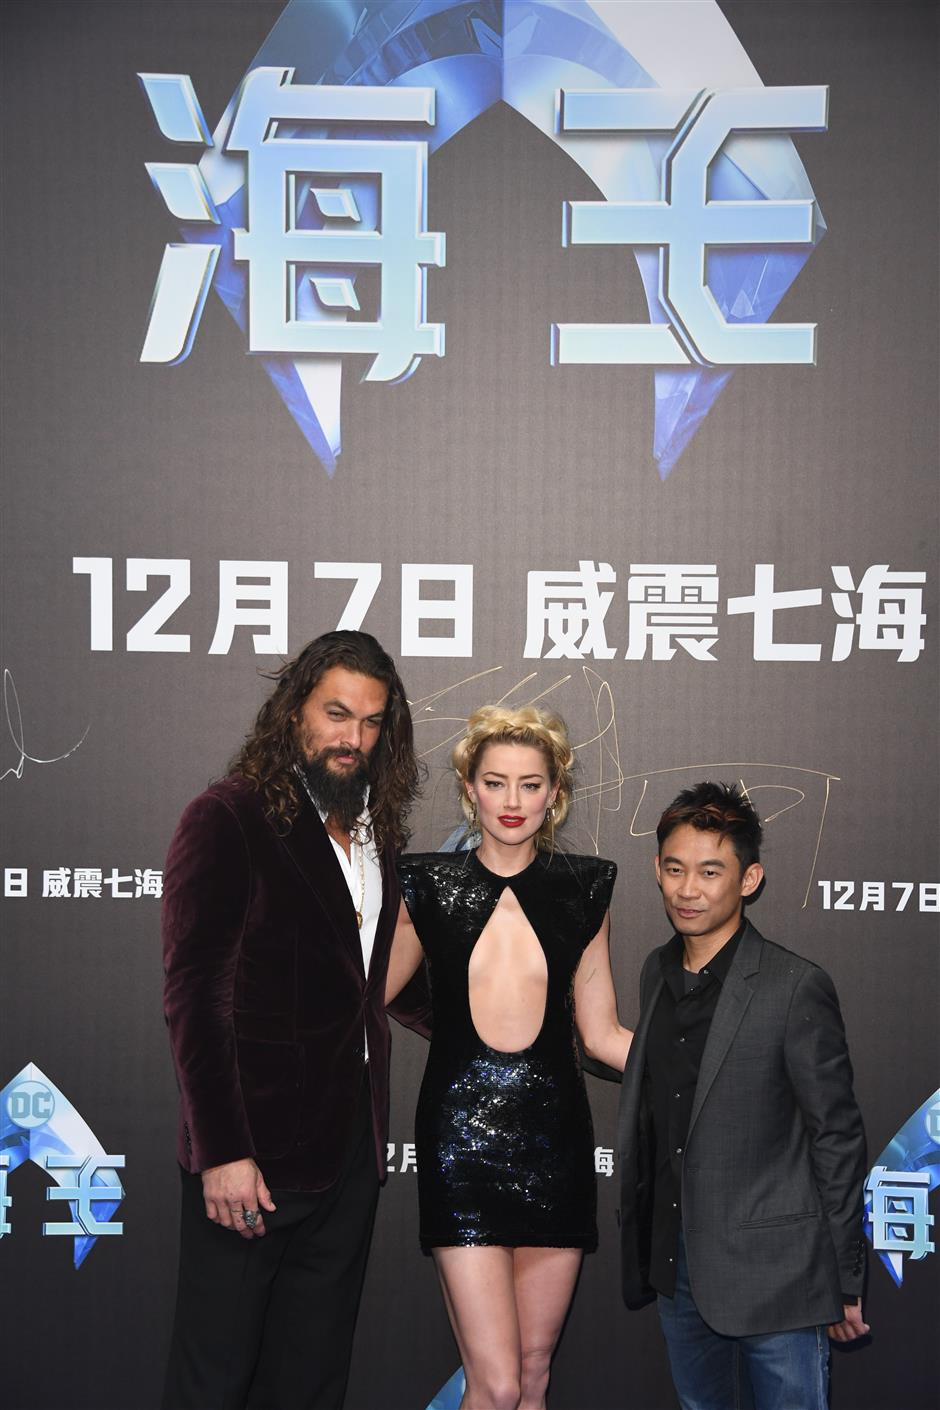 DC superhero movie 'Aquaman' opens strongly in China